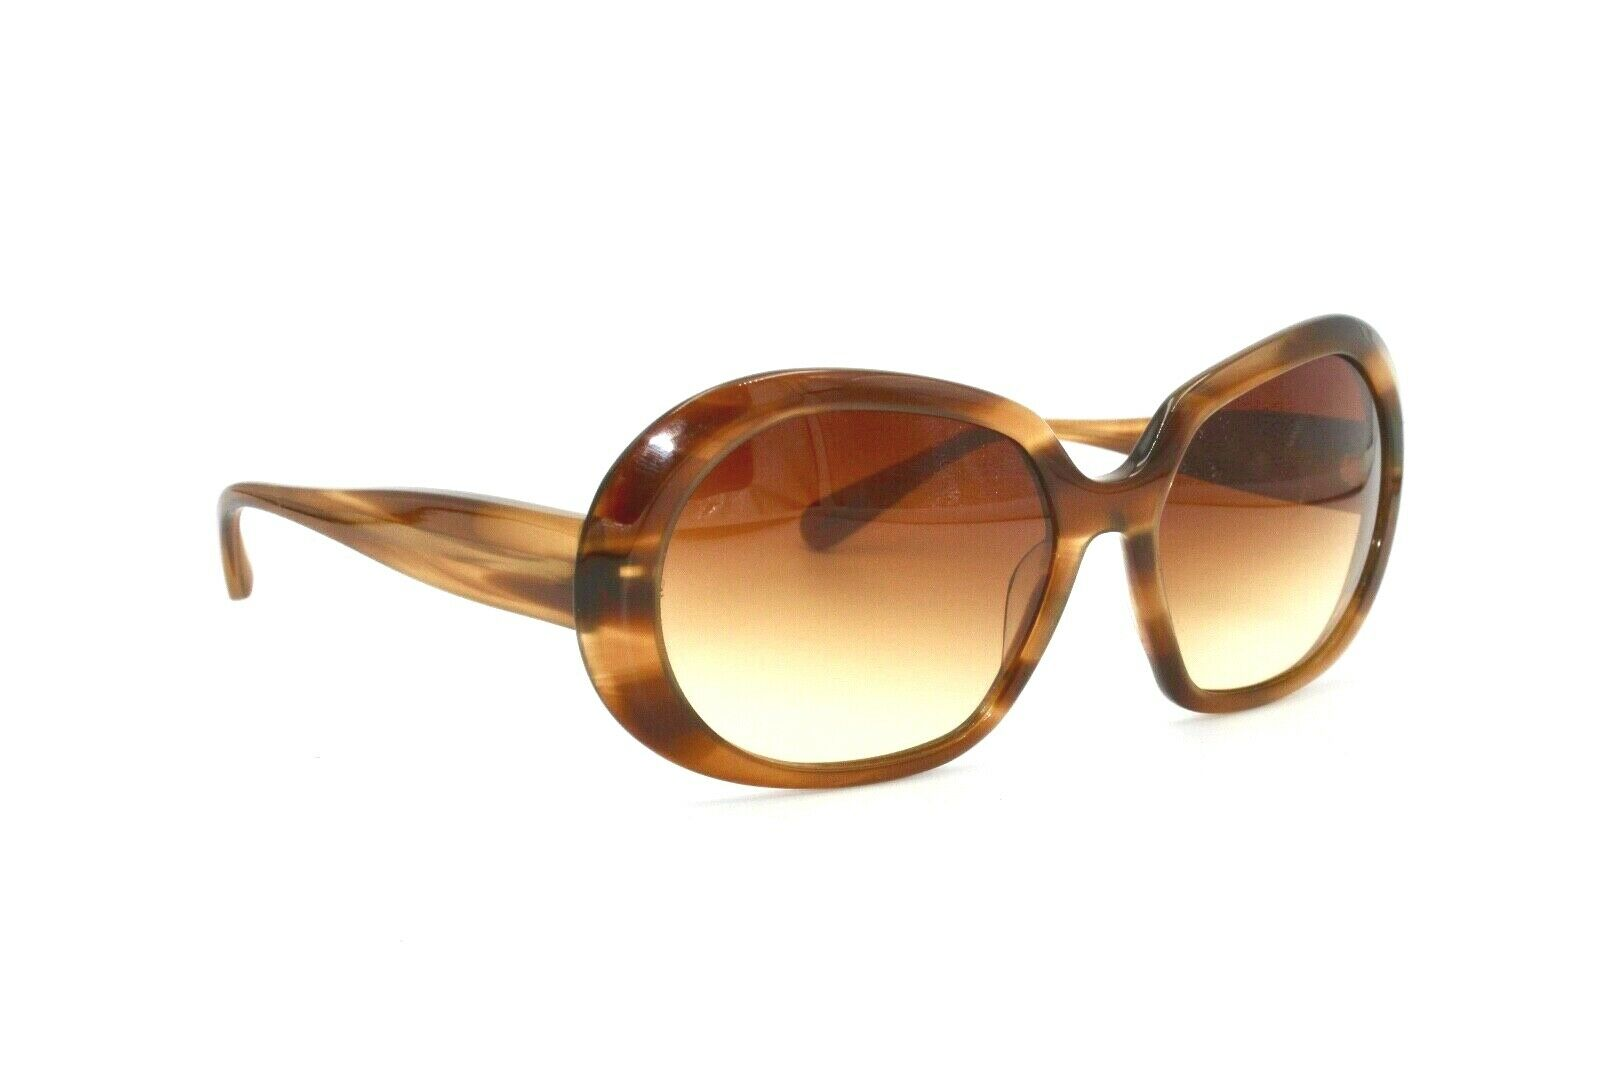 Oliver Peoples Sunglasses Twenty Years 59 17-135 Ballerina SYC Made in Japan - Mydesigneroptic